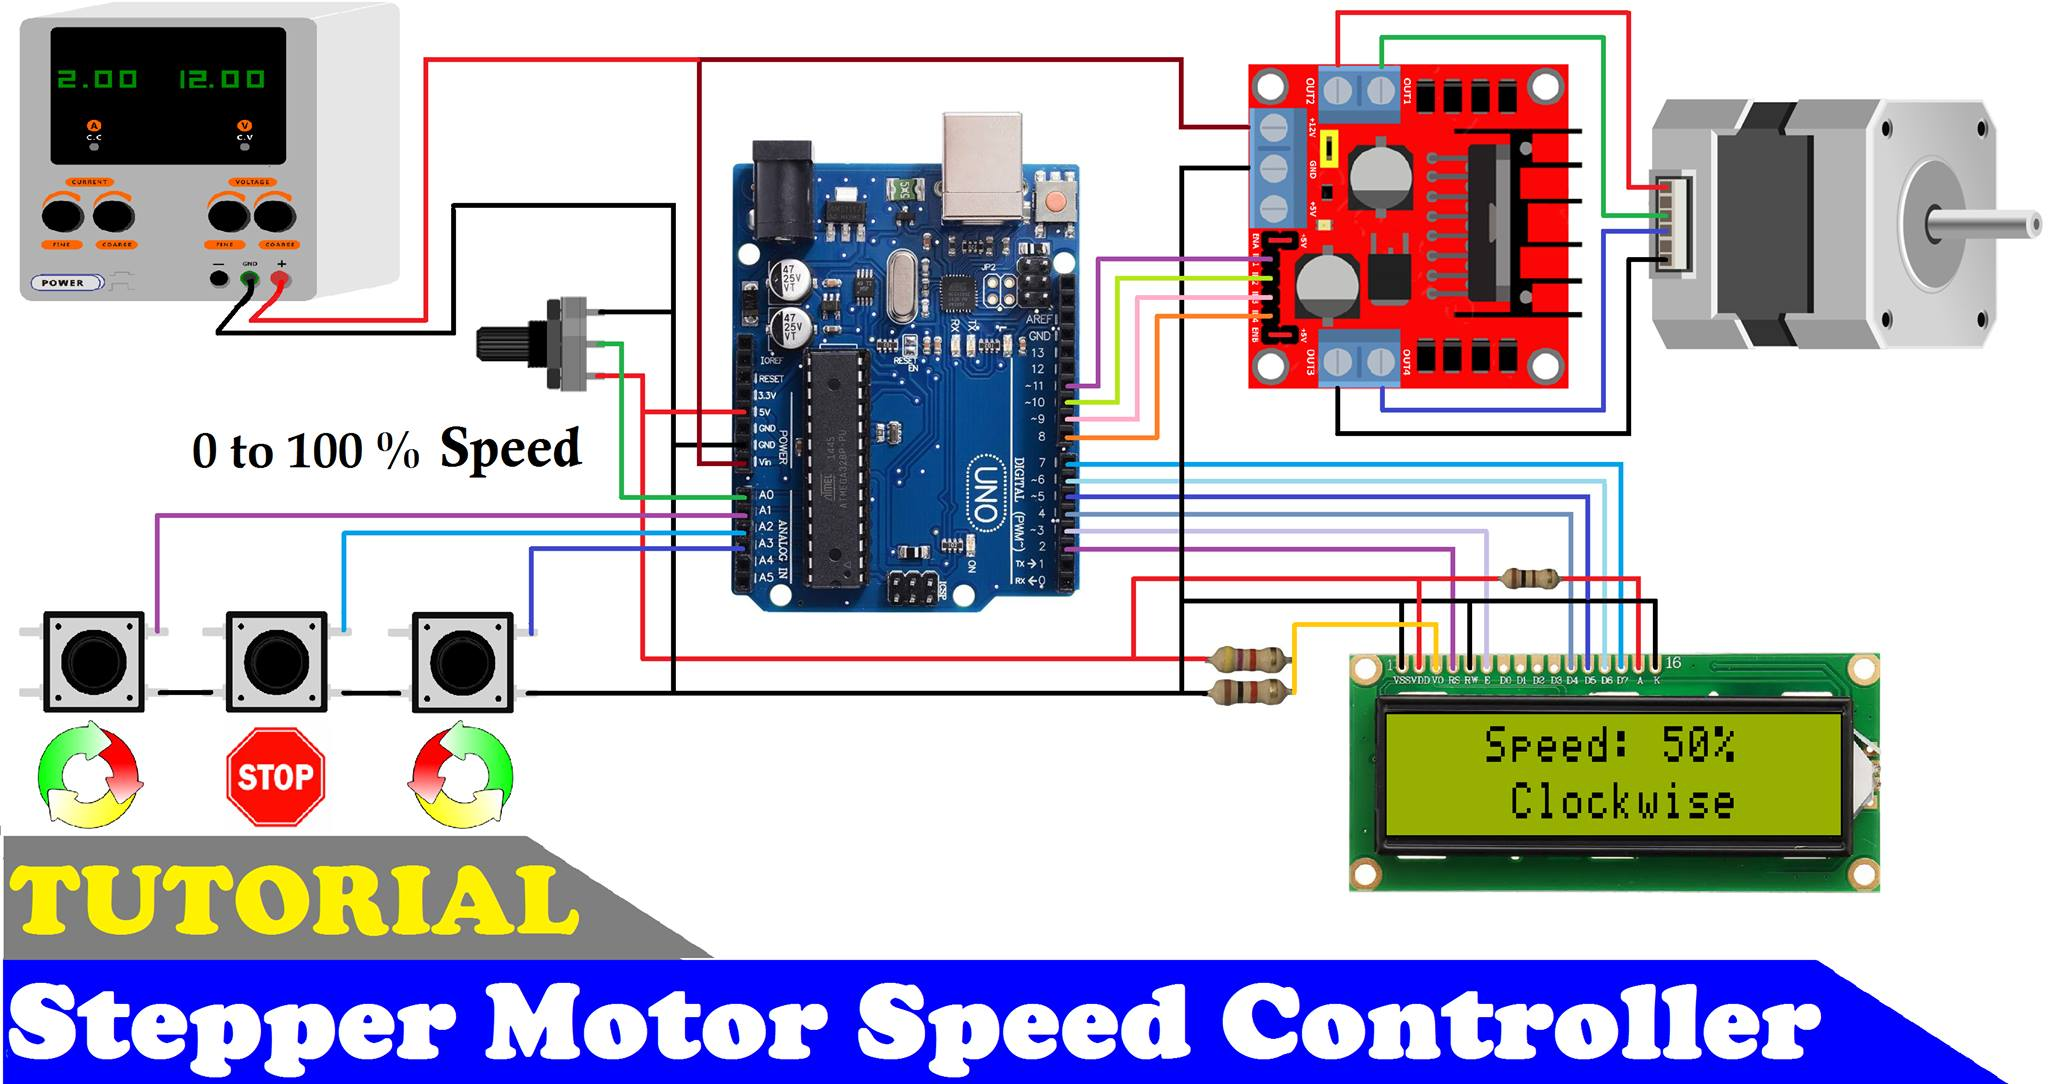 How to make a stepper motor speed controller using arduino and l298 motor drive fxtu8mgrq2